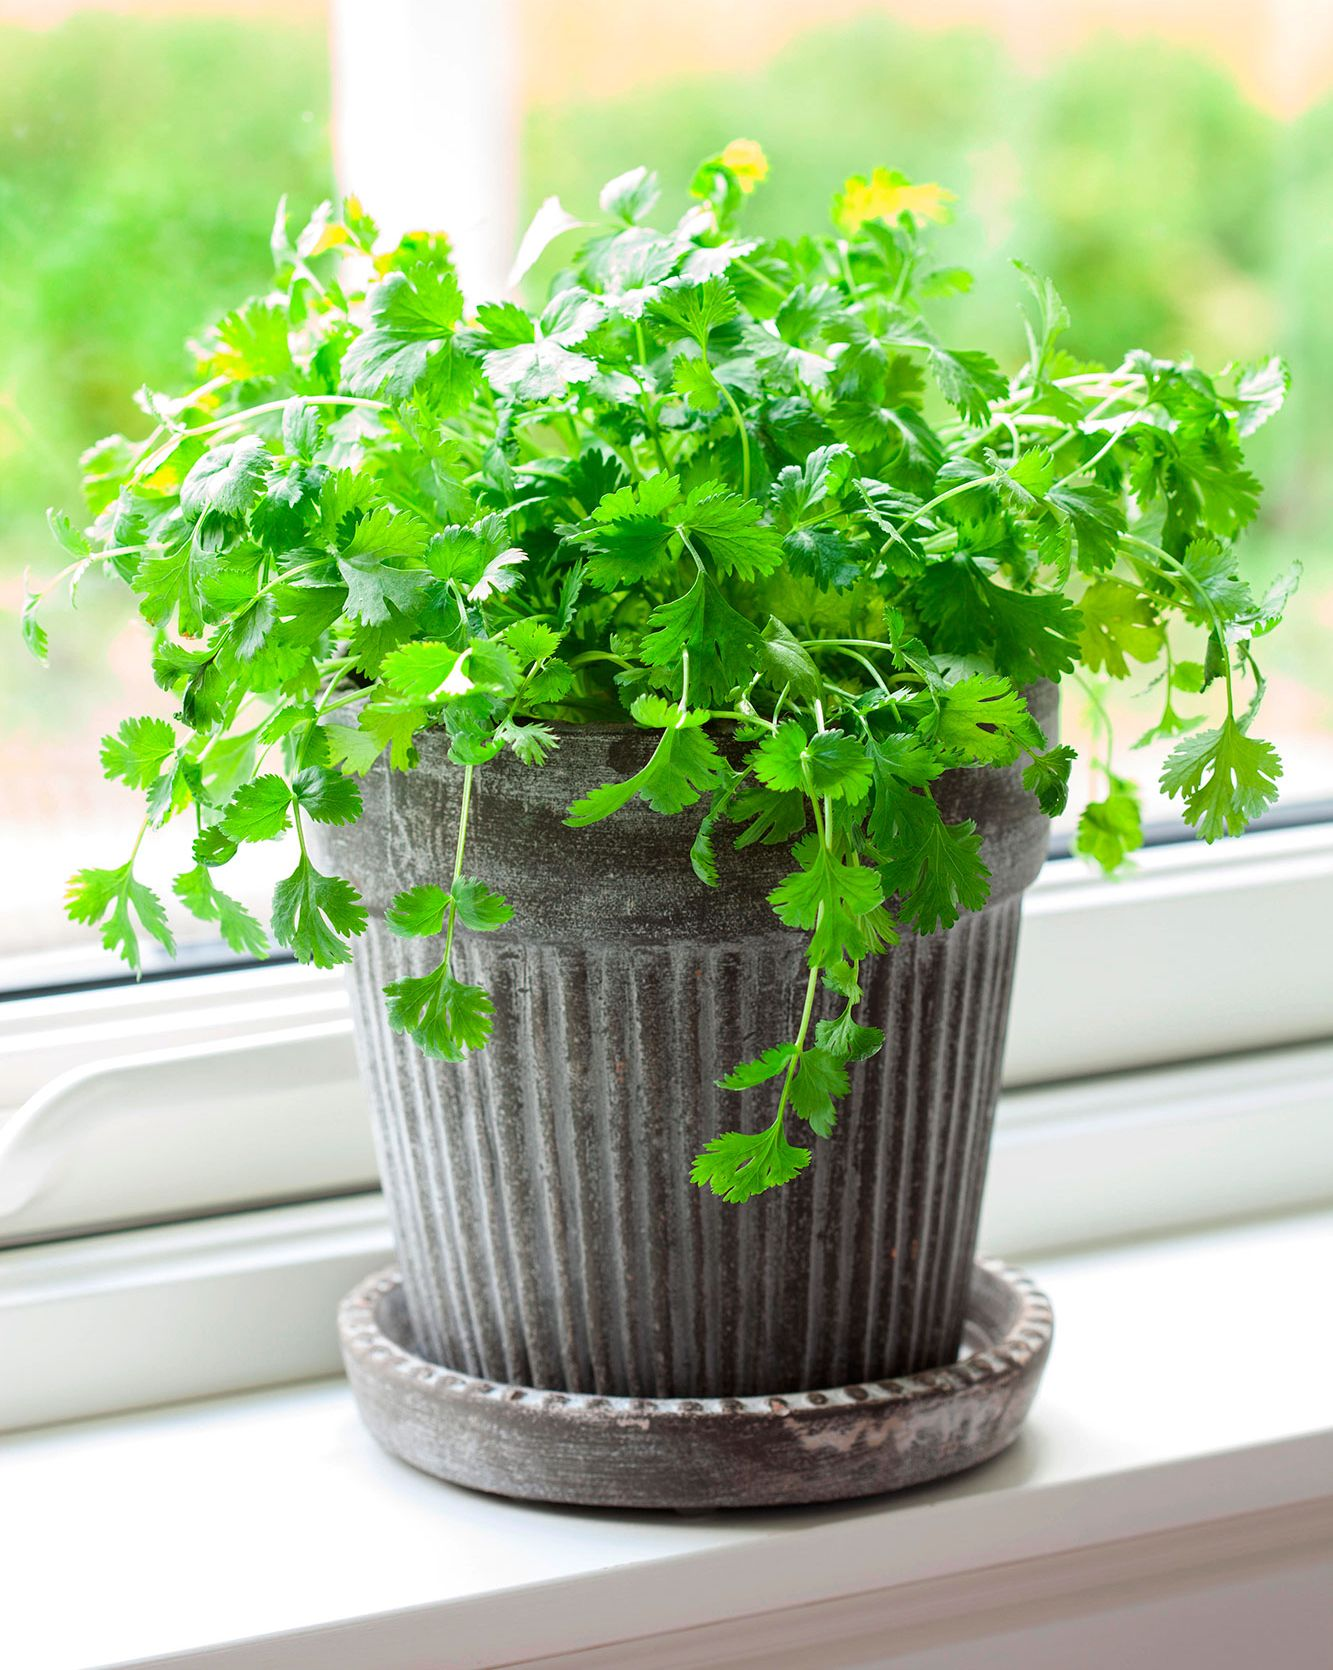 5 best herbs and spices to grow indoors